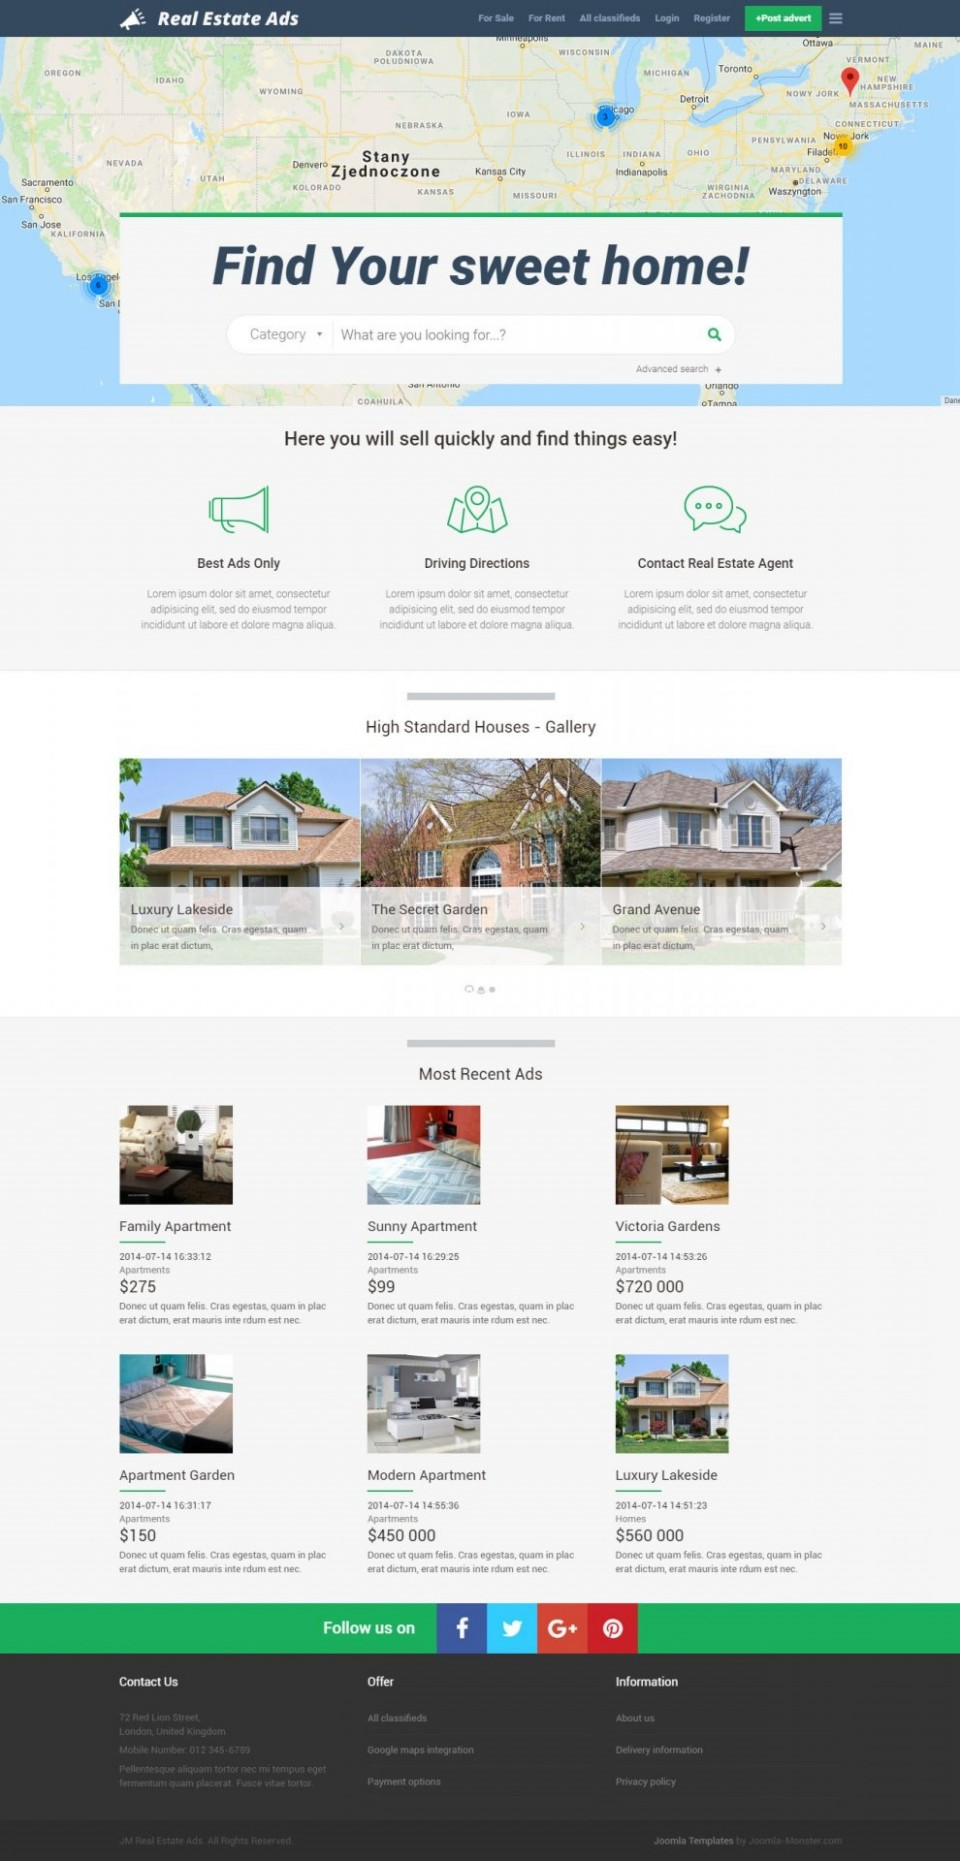 004 Imposing Real Estate Advertising Template High Def  Facebook Ad Craigslist960